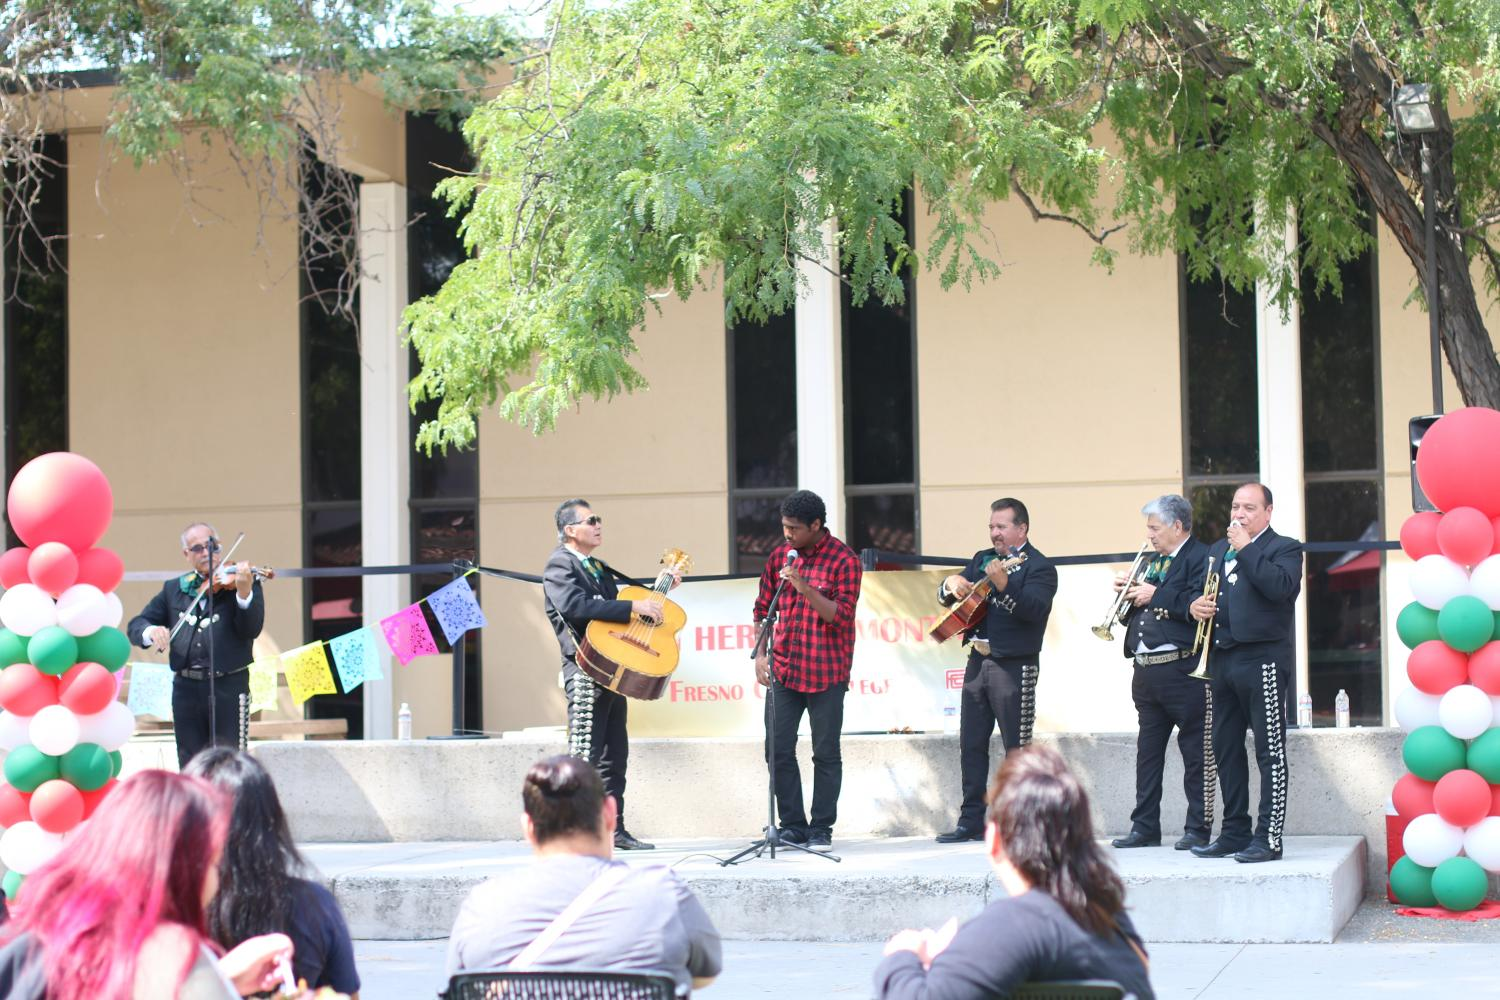 The Fresno City College student activities office organized a Club Rush on Thursday, Sept. 14, 2017 to coincide with the beginning of Latino Heritage Month.